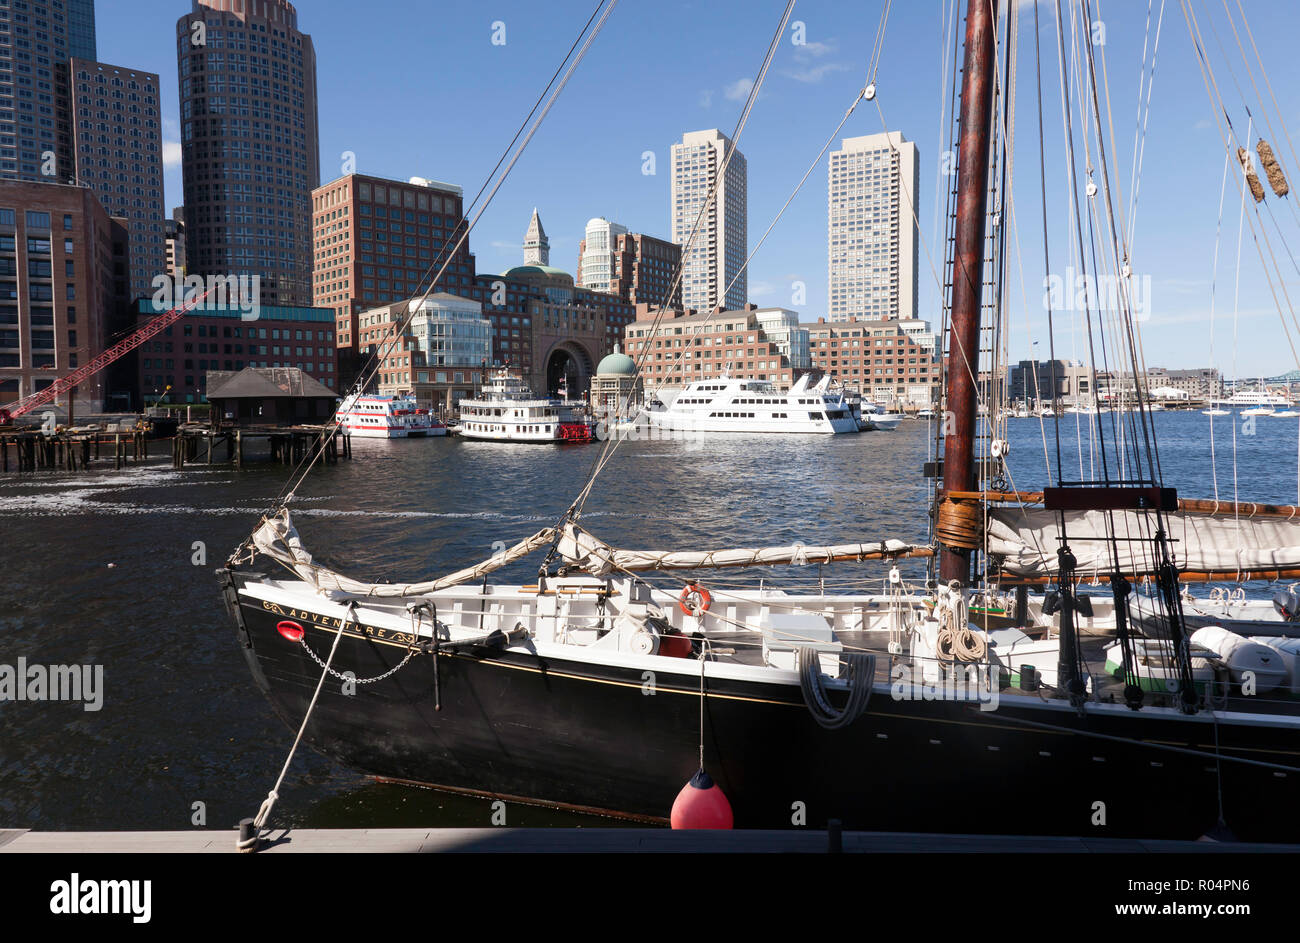 Adventure, a 1926, gaff rigged knockabout schooner, moored in Boston Harbour Stock Photo